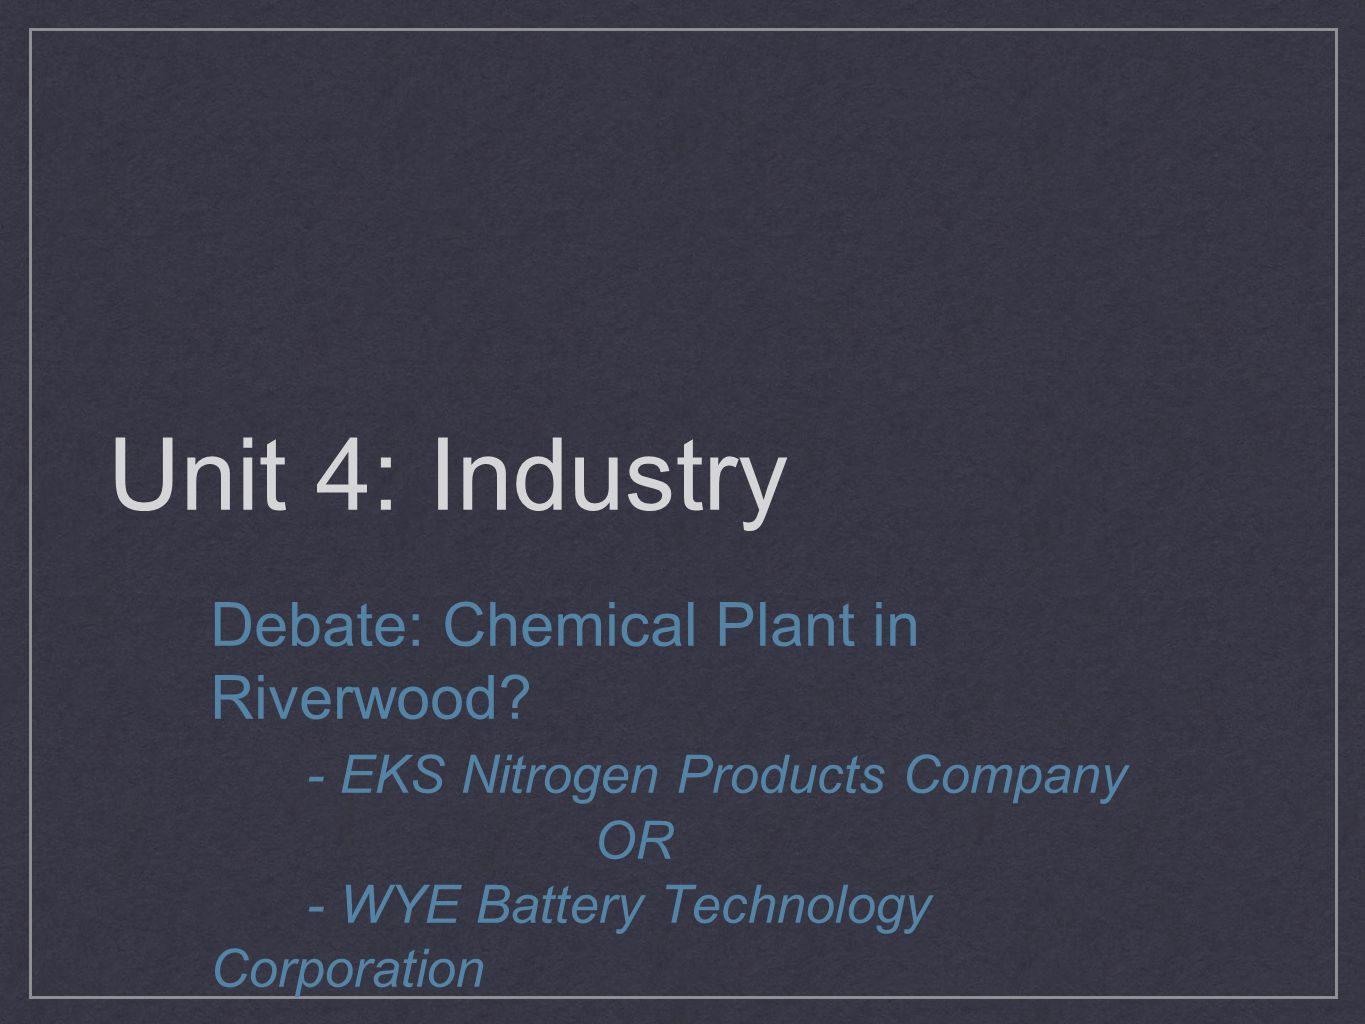 Unit 4: Industry Debate: Chemical Plant in Riverwood? - EKS Nitrogen Products Company OR - WYE Battery Technology Corporation